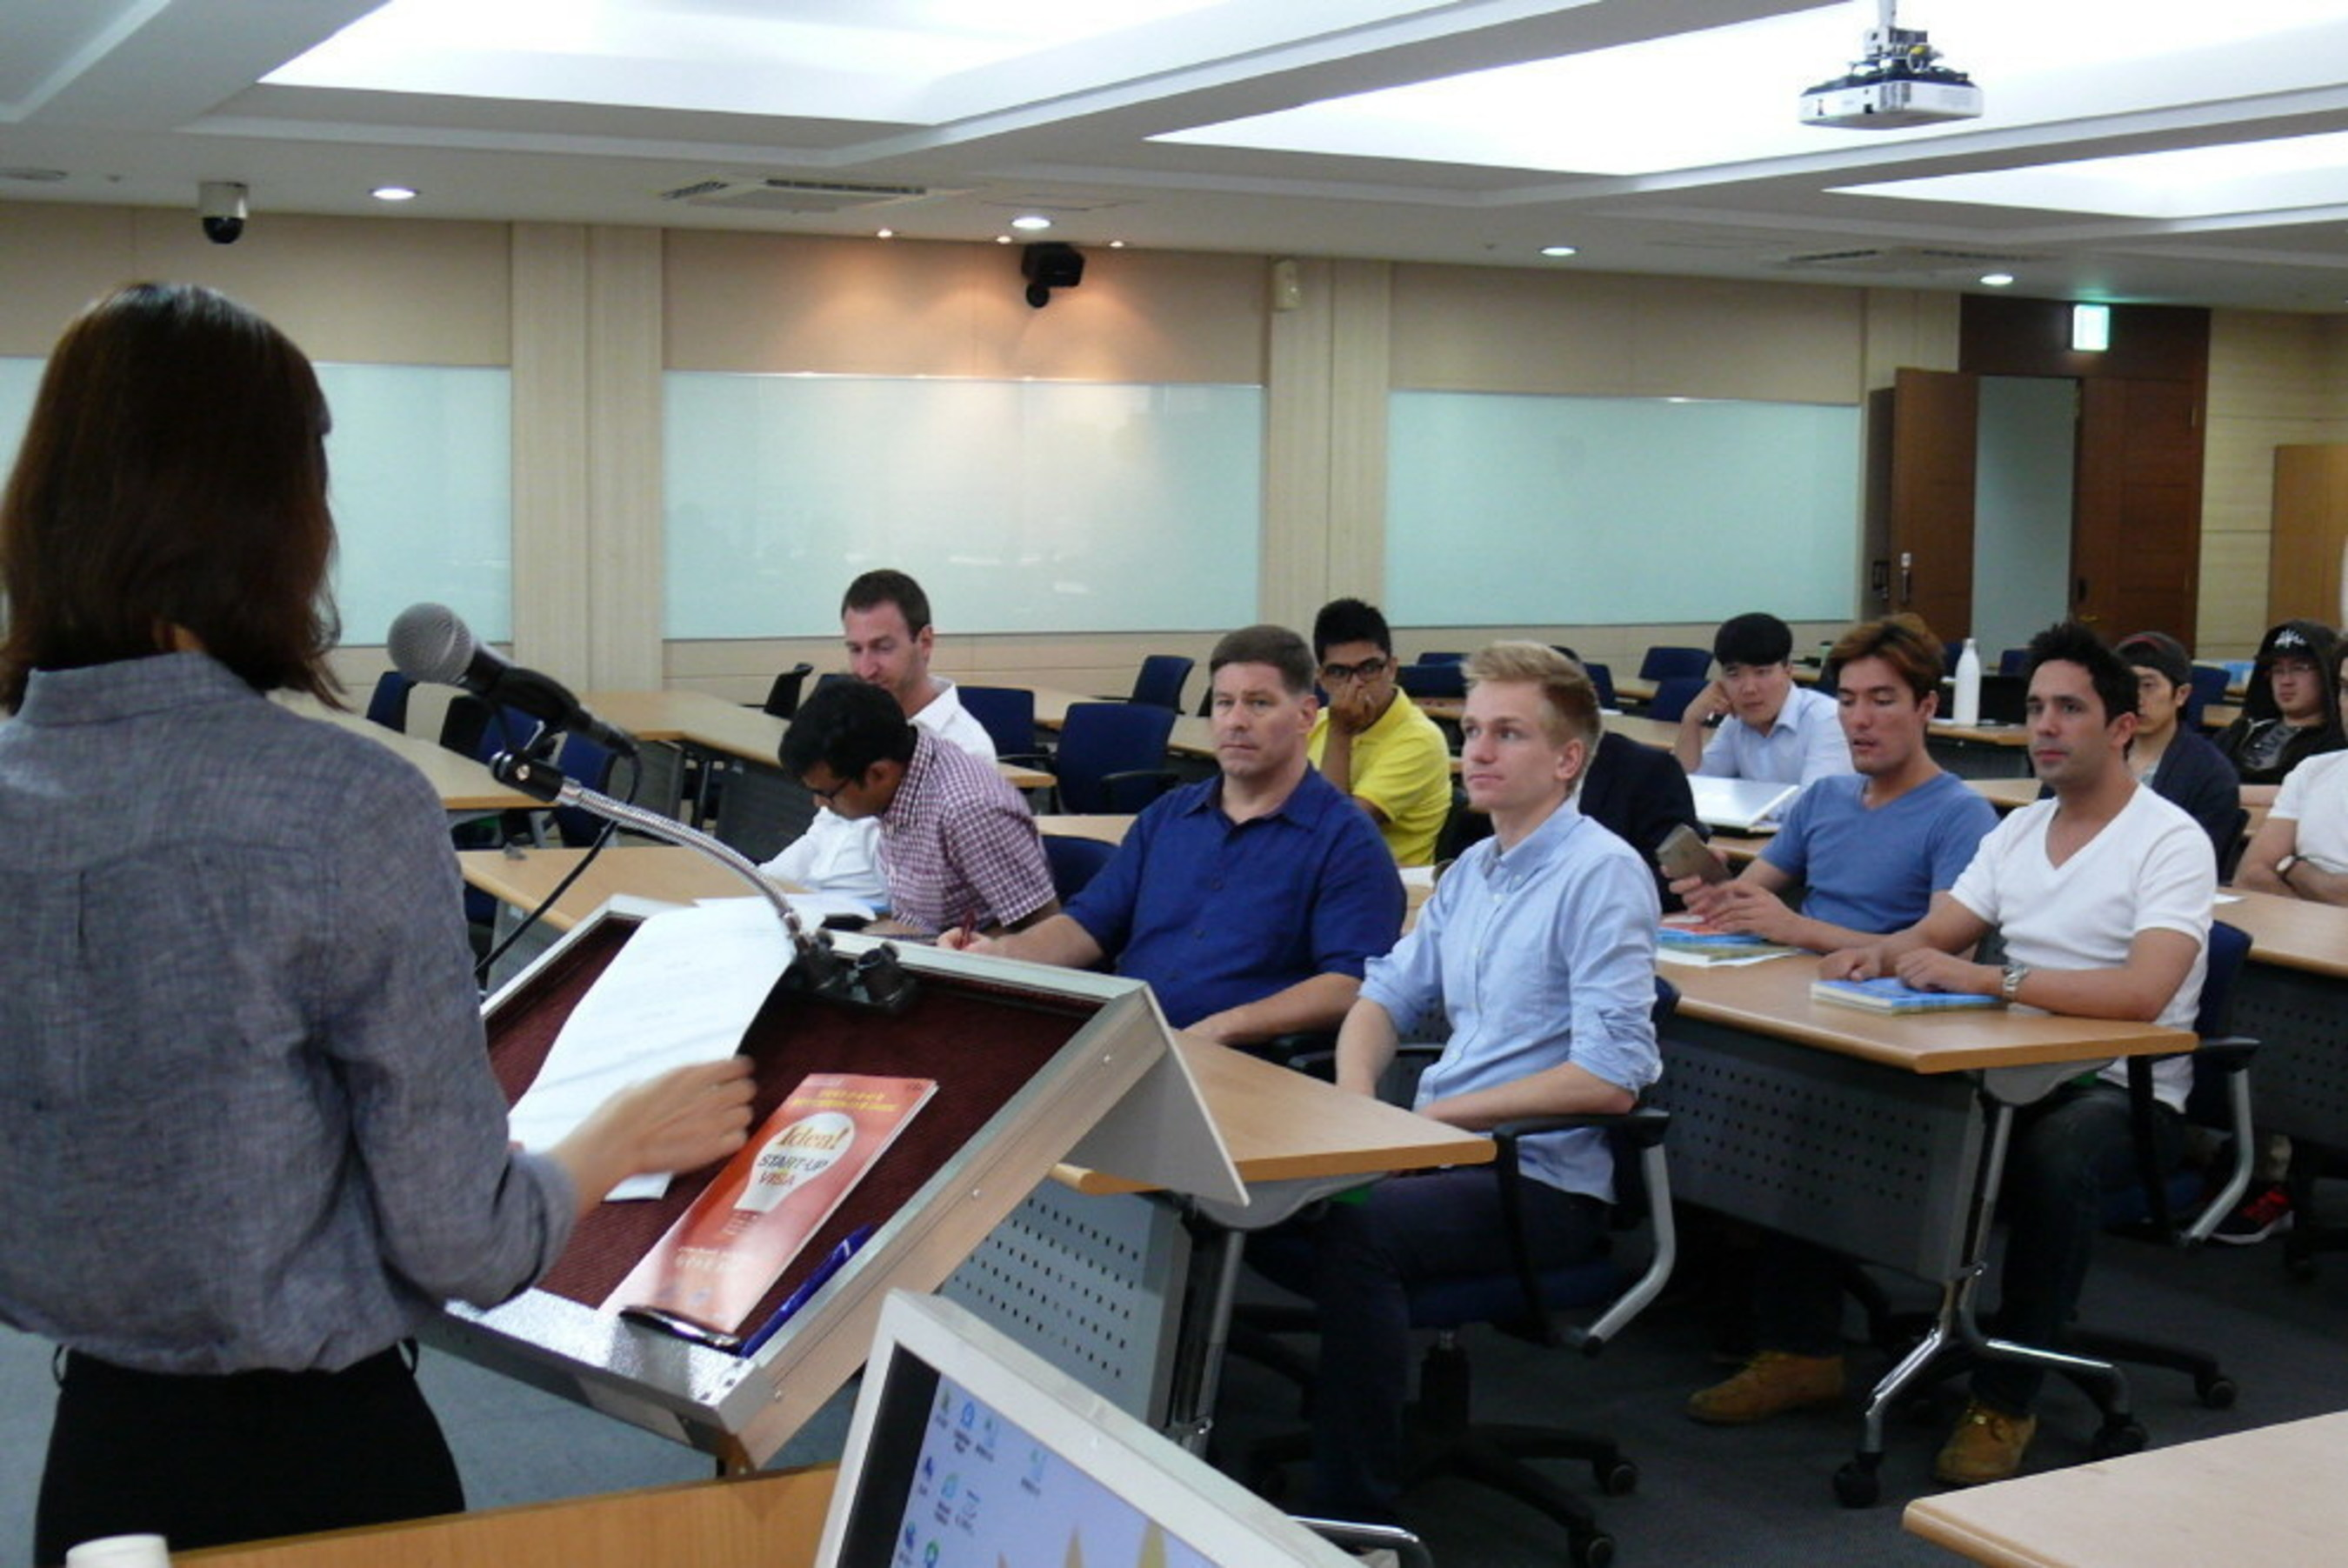 Foreigners who want to launch start-up business in Korea participated in Advanced Intellectual Property Course (OASIS-2) held from 17th to 22nd.